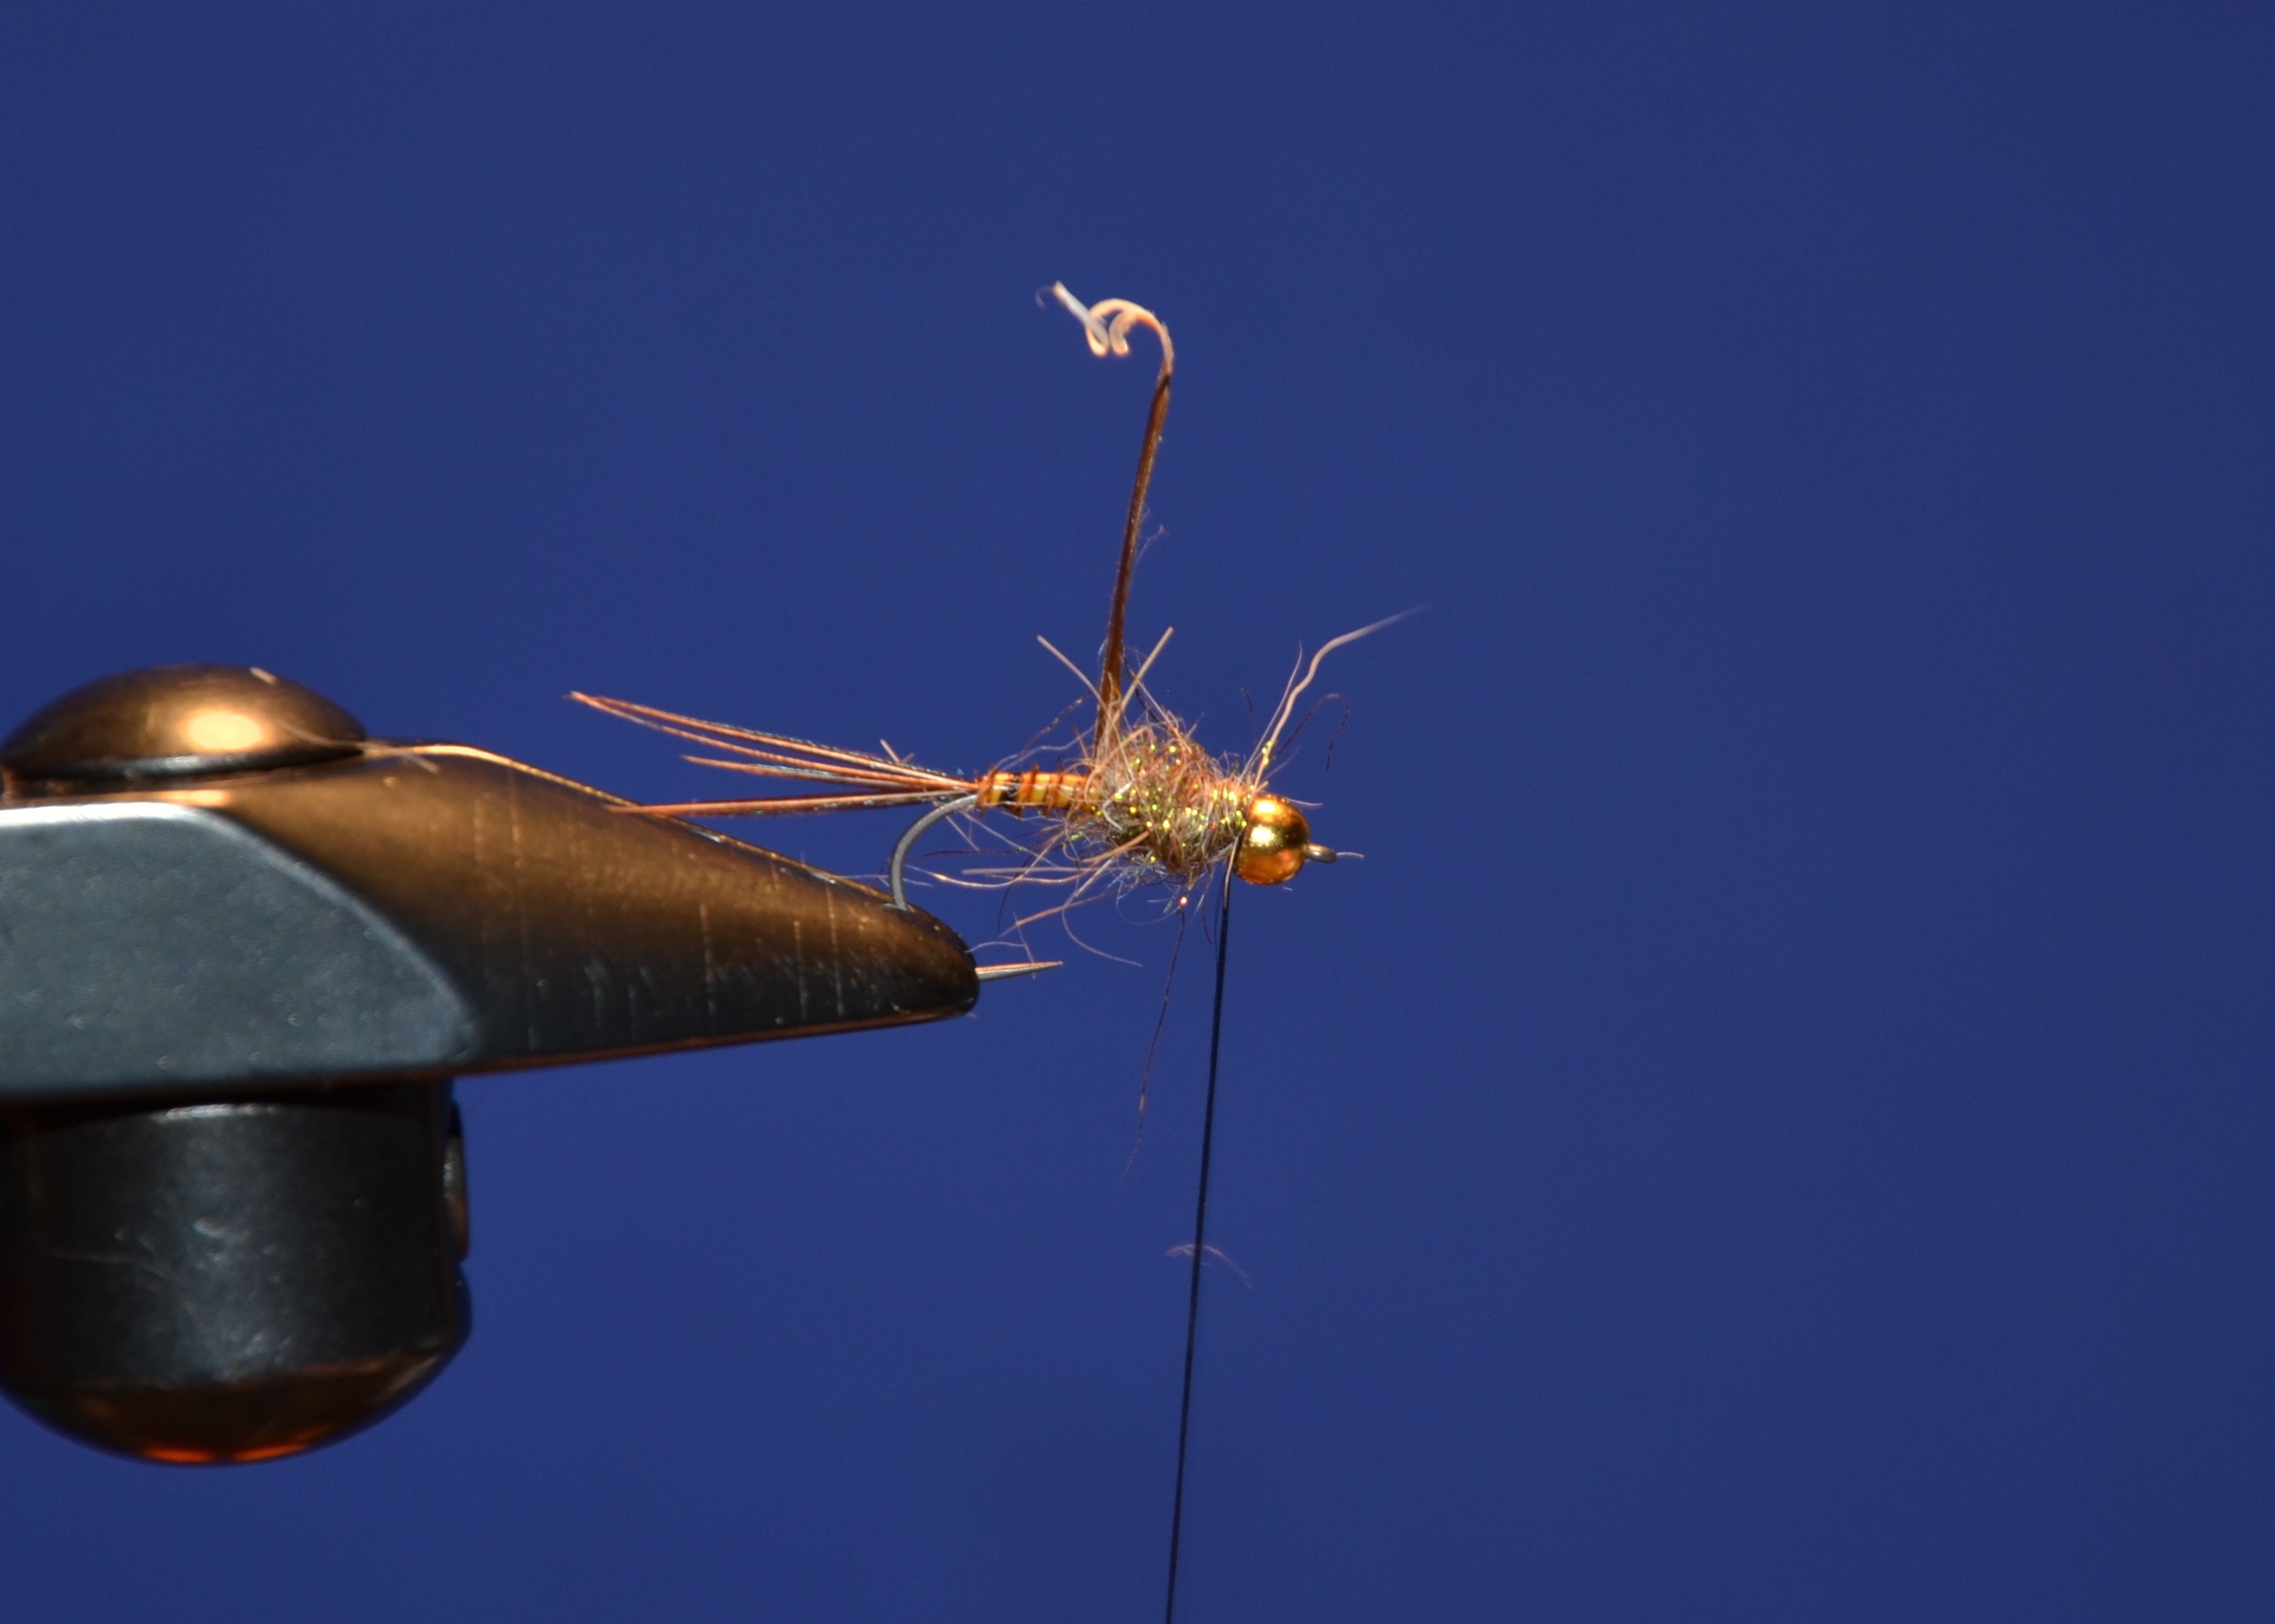 mix up some hare's ear and the Ice dub pheasant tail. and dub thorax.